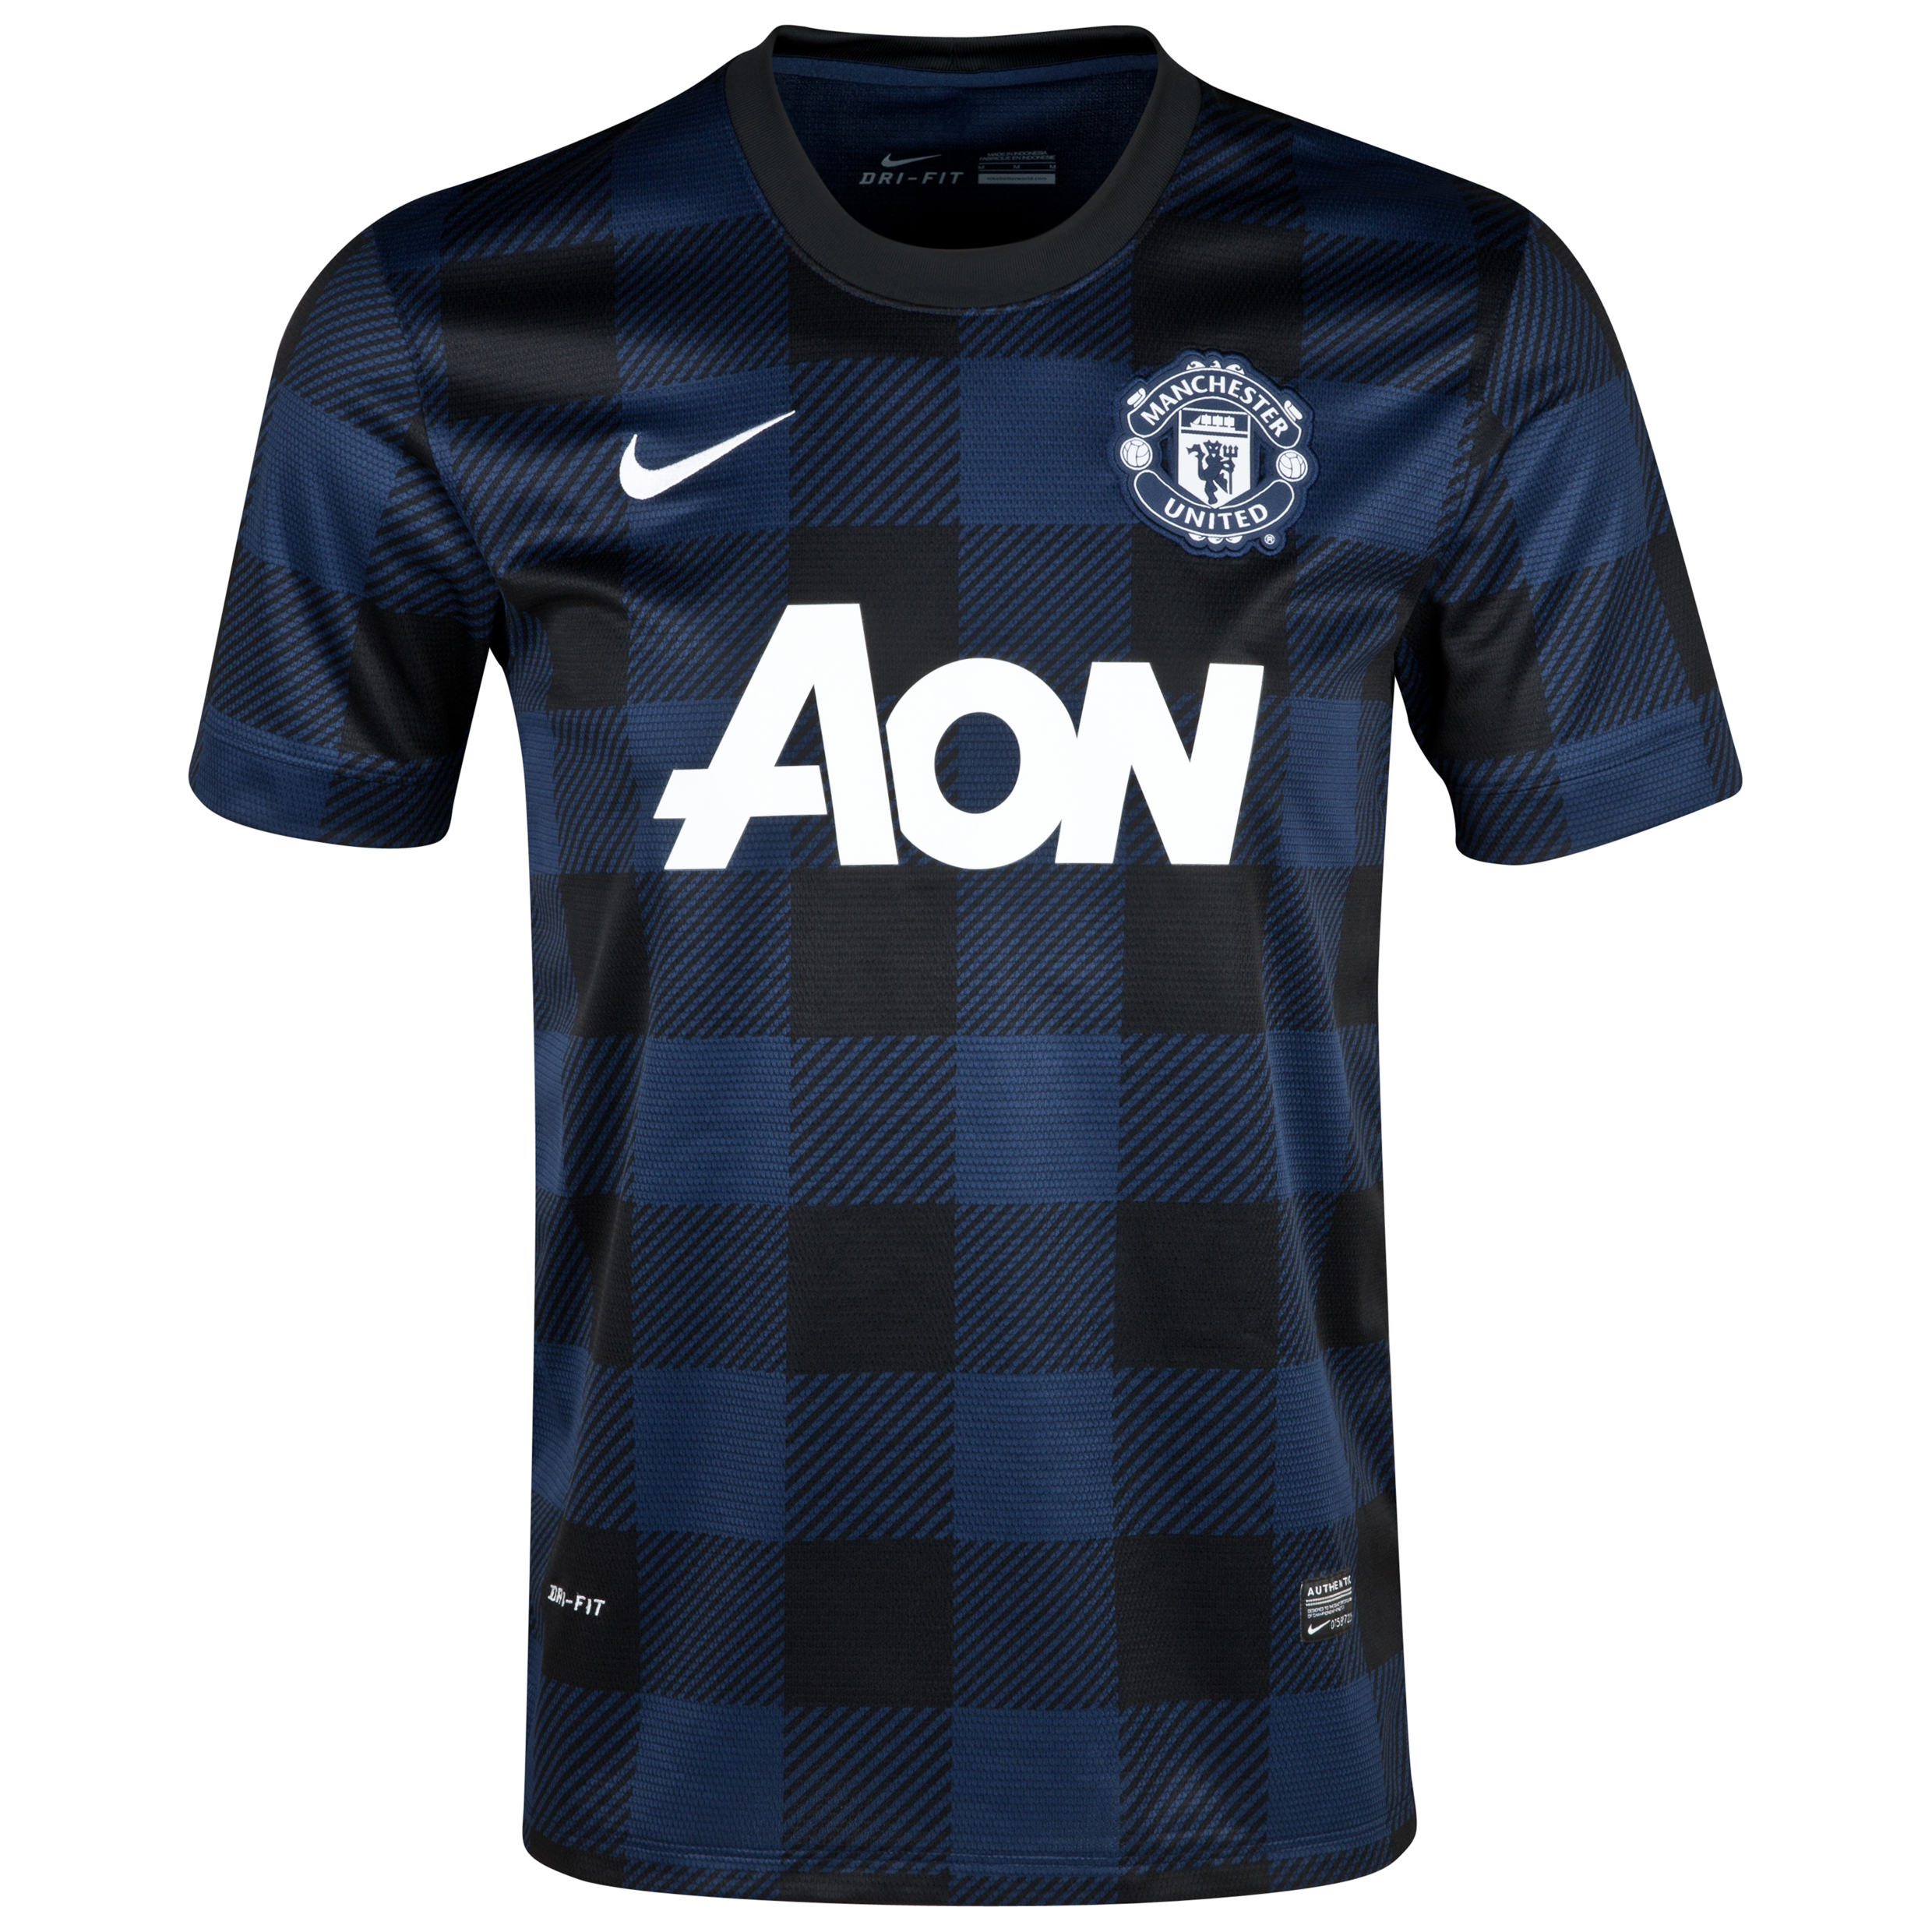 Manchester United UEFA Champions League Away Shirt 2013/14 - Womens with Cleverley 23 printing